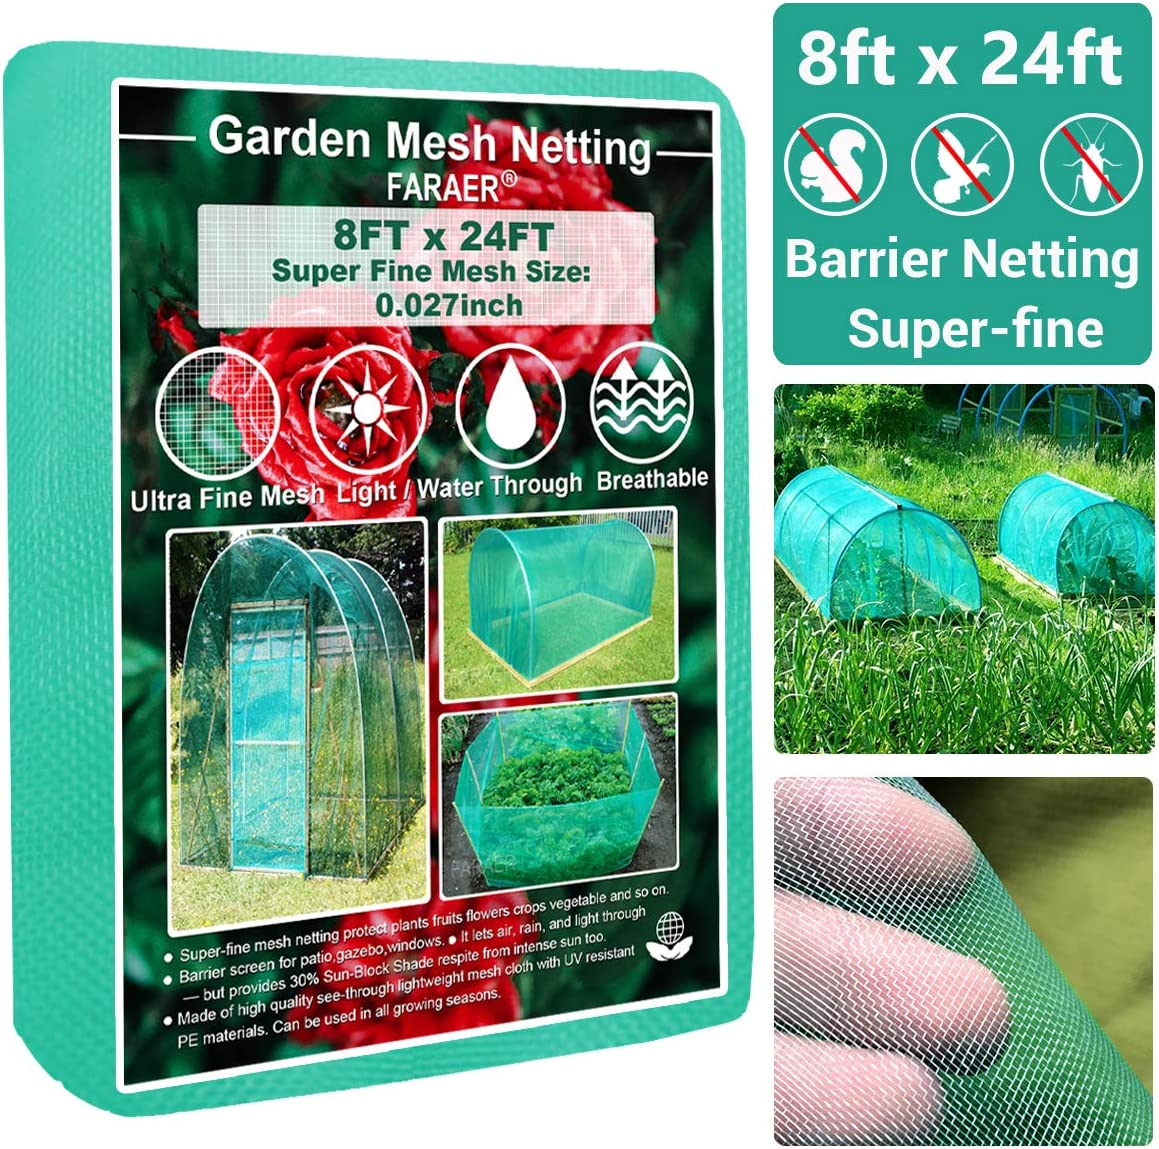 Garden Barrier Netting, Plant Covers 8x24ft Extra Fine Mesh 30% Sun Net Green Sunblock Mesh Shade Protection Netting for Vegetable Fruits Flowers Crops Row Cover Raised Bed Screen Against Birds Animal